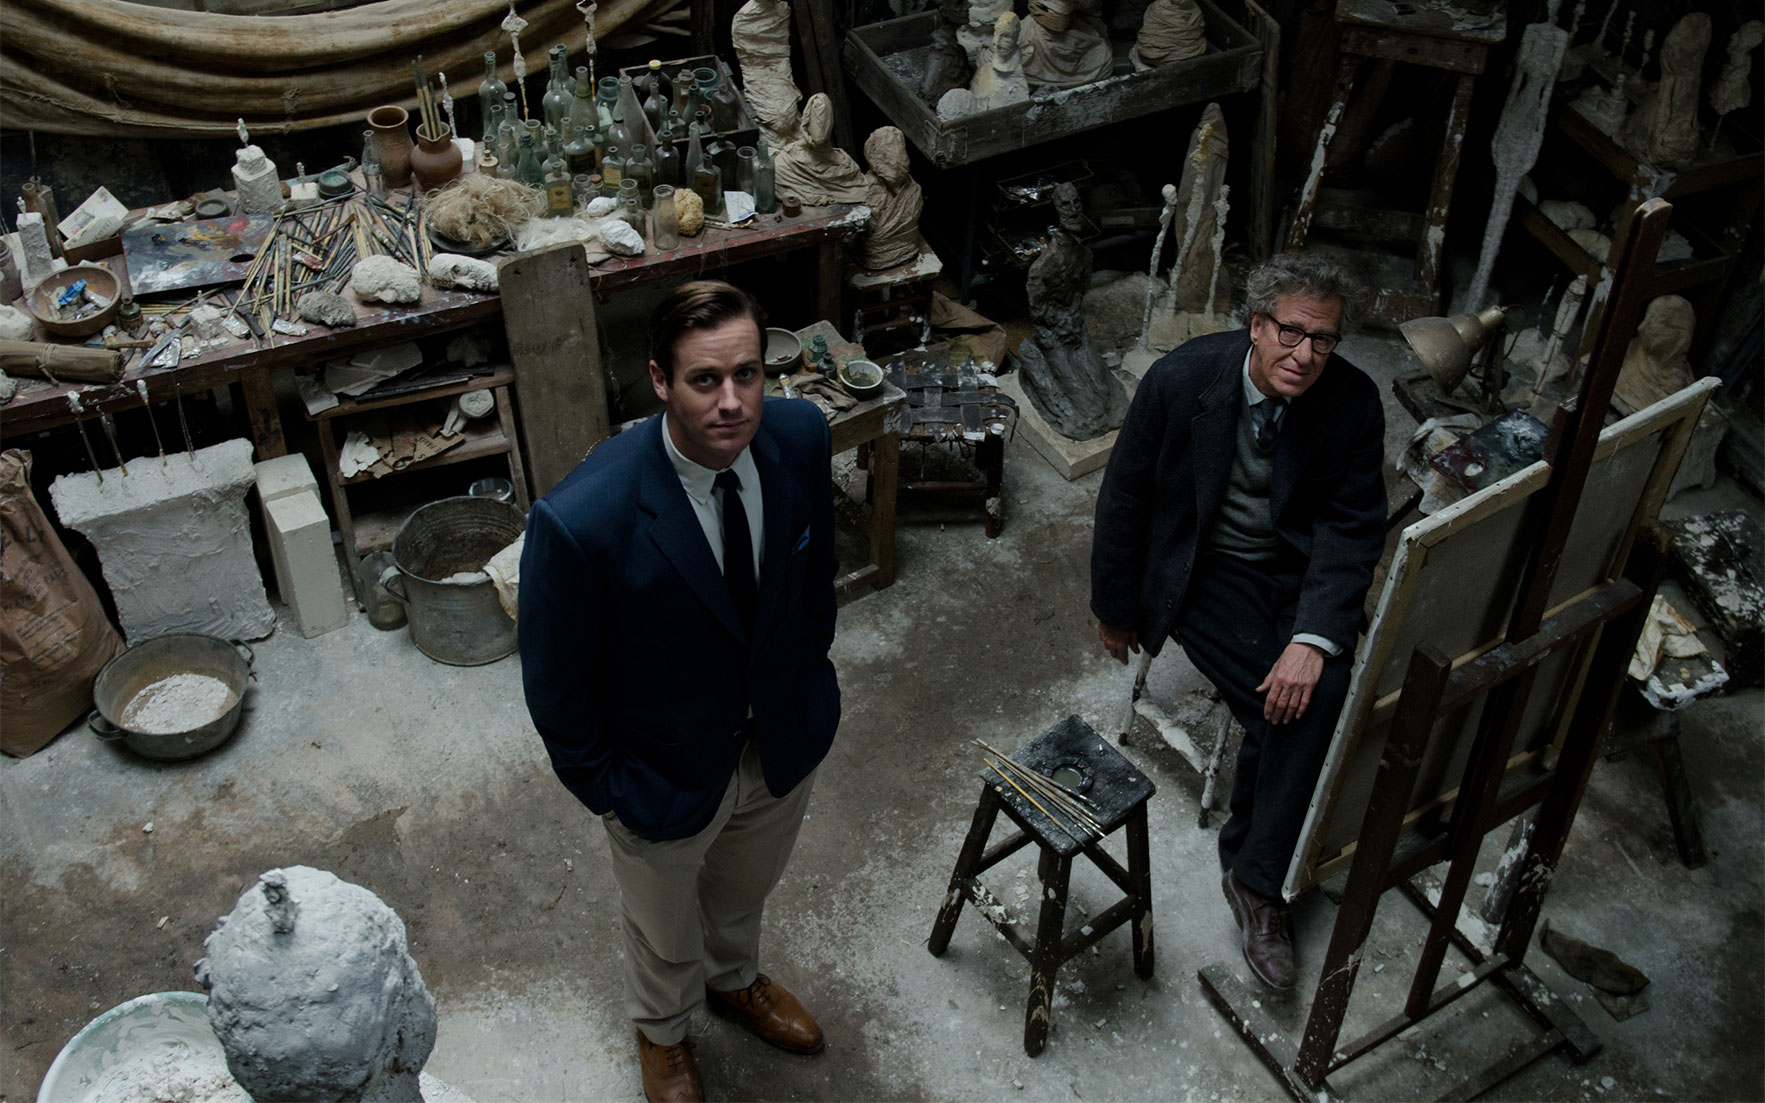 'I wanted Giacometti's studio